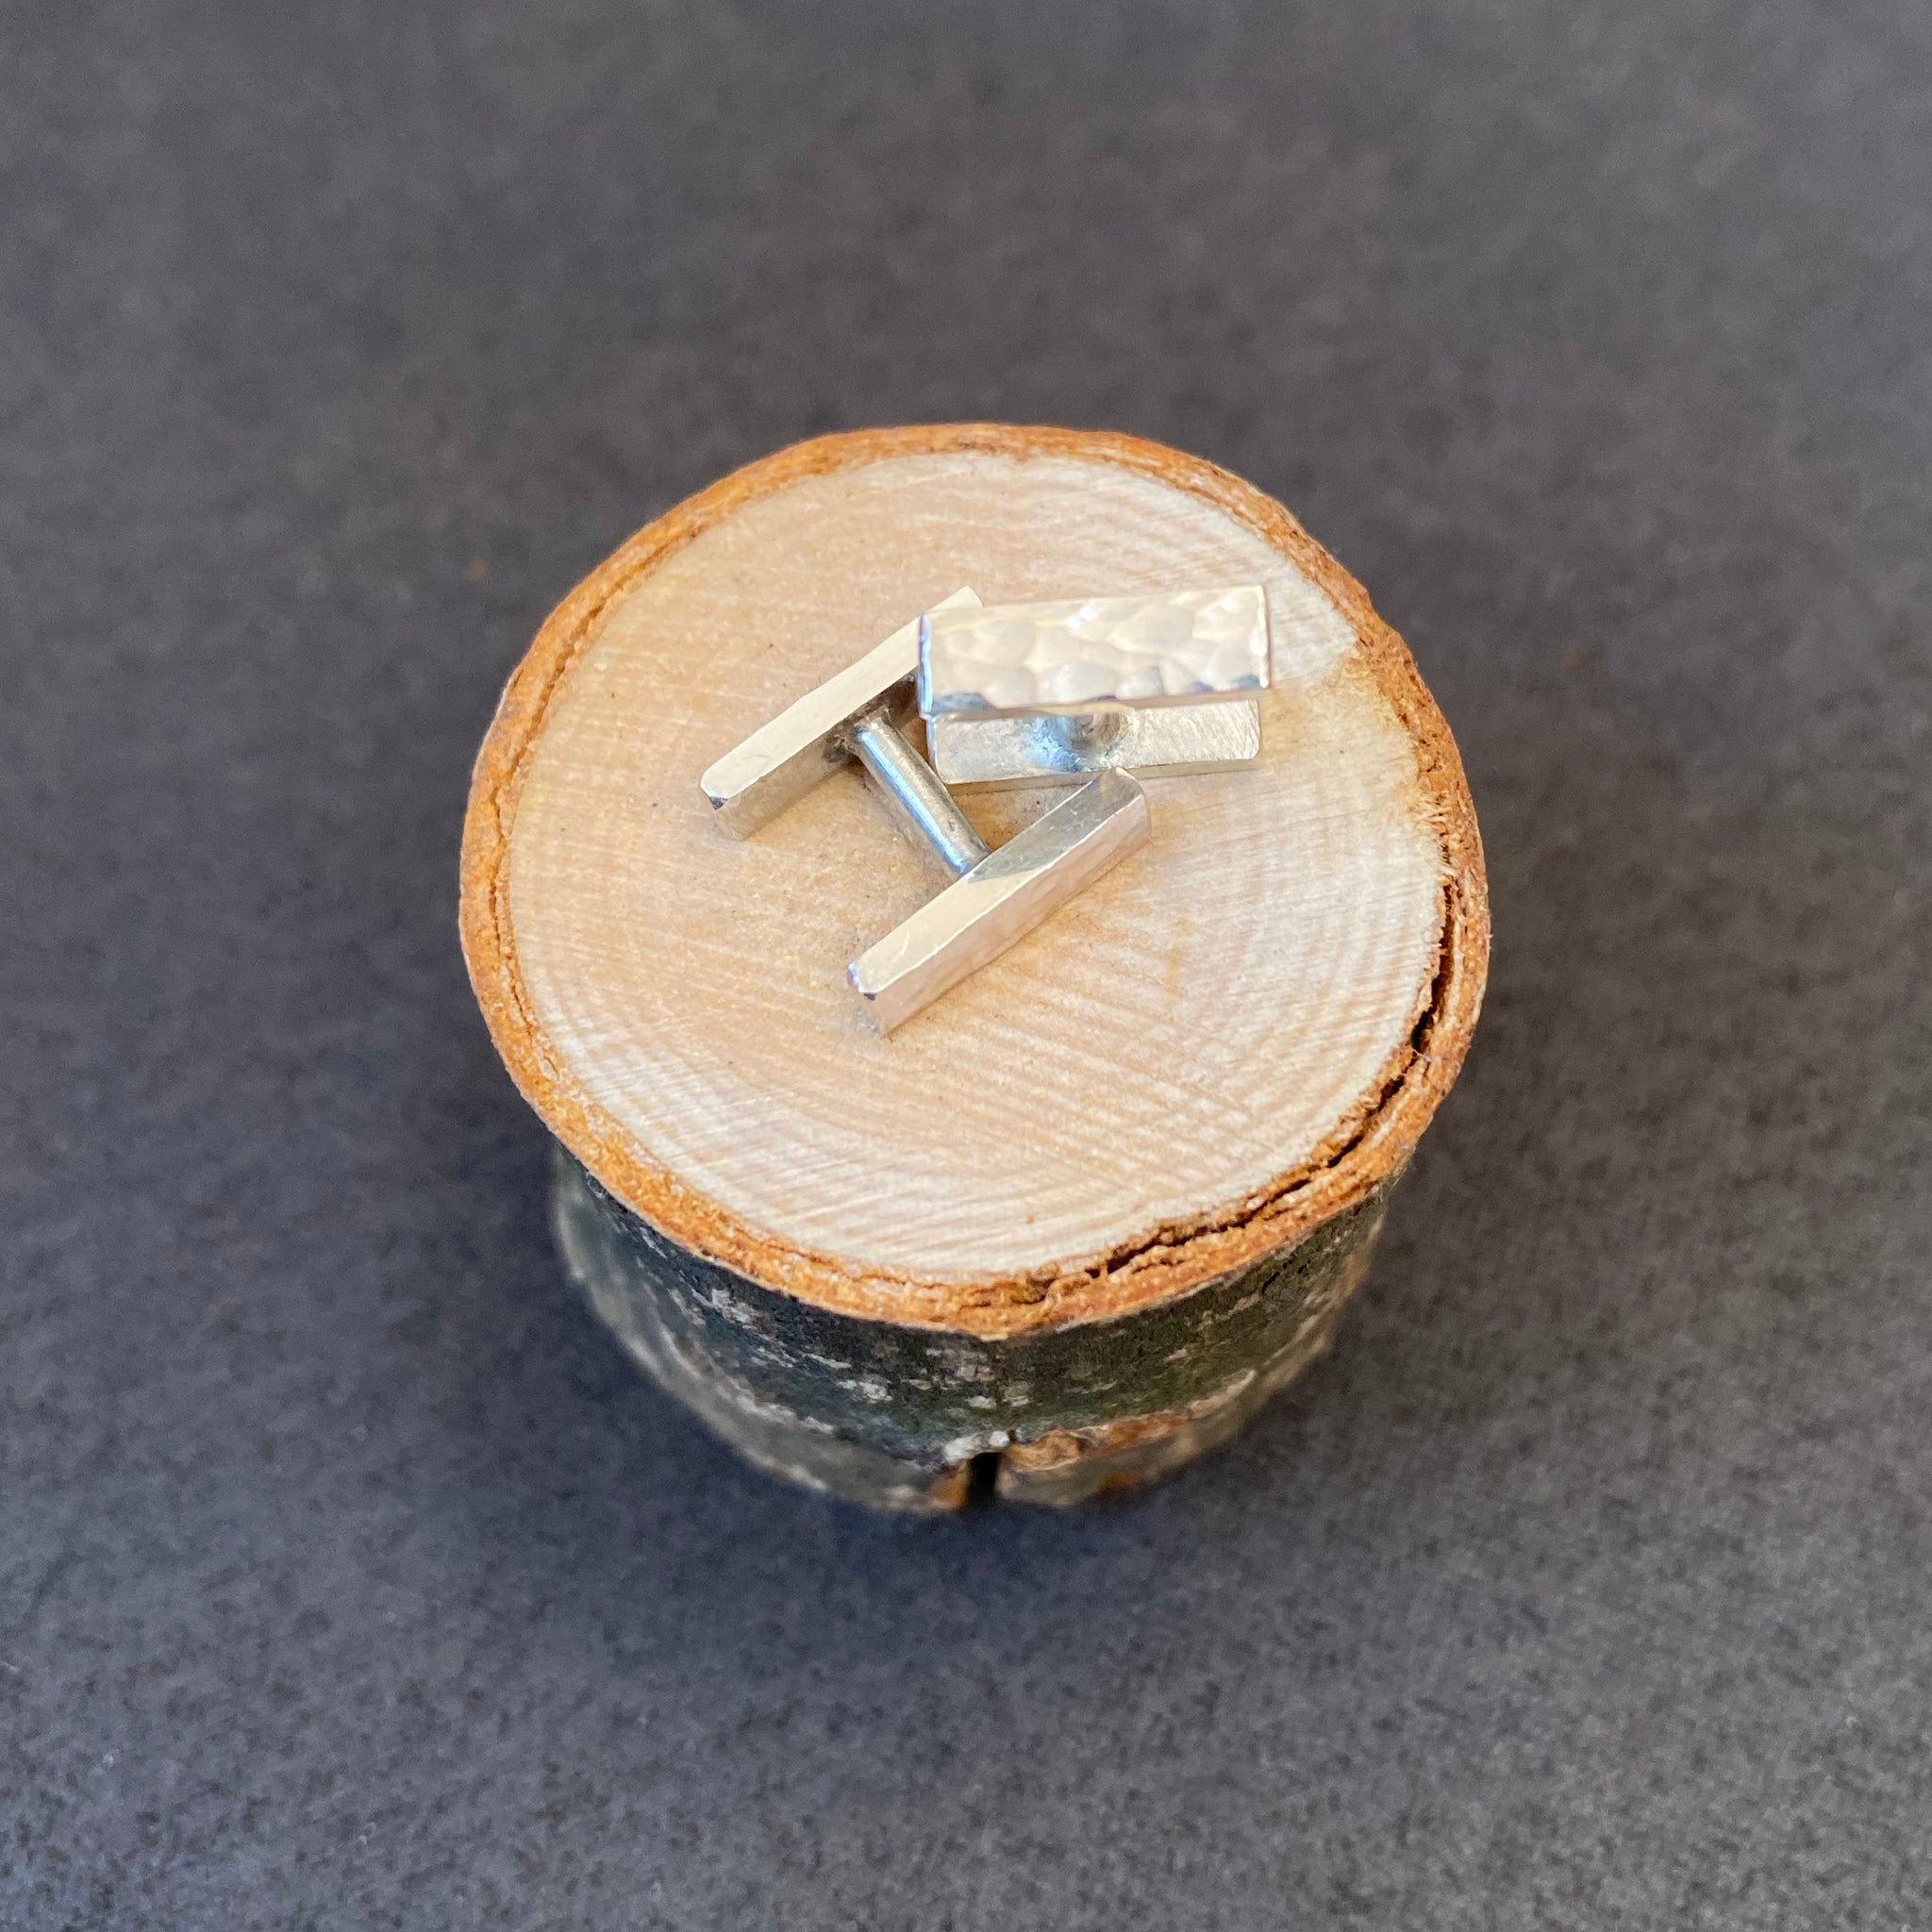 Hammered bar cufflinks